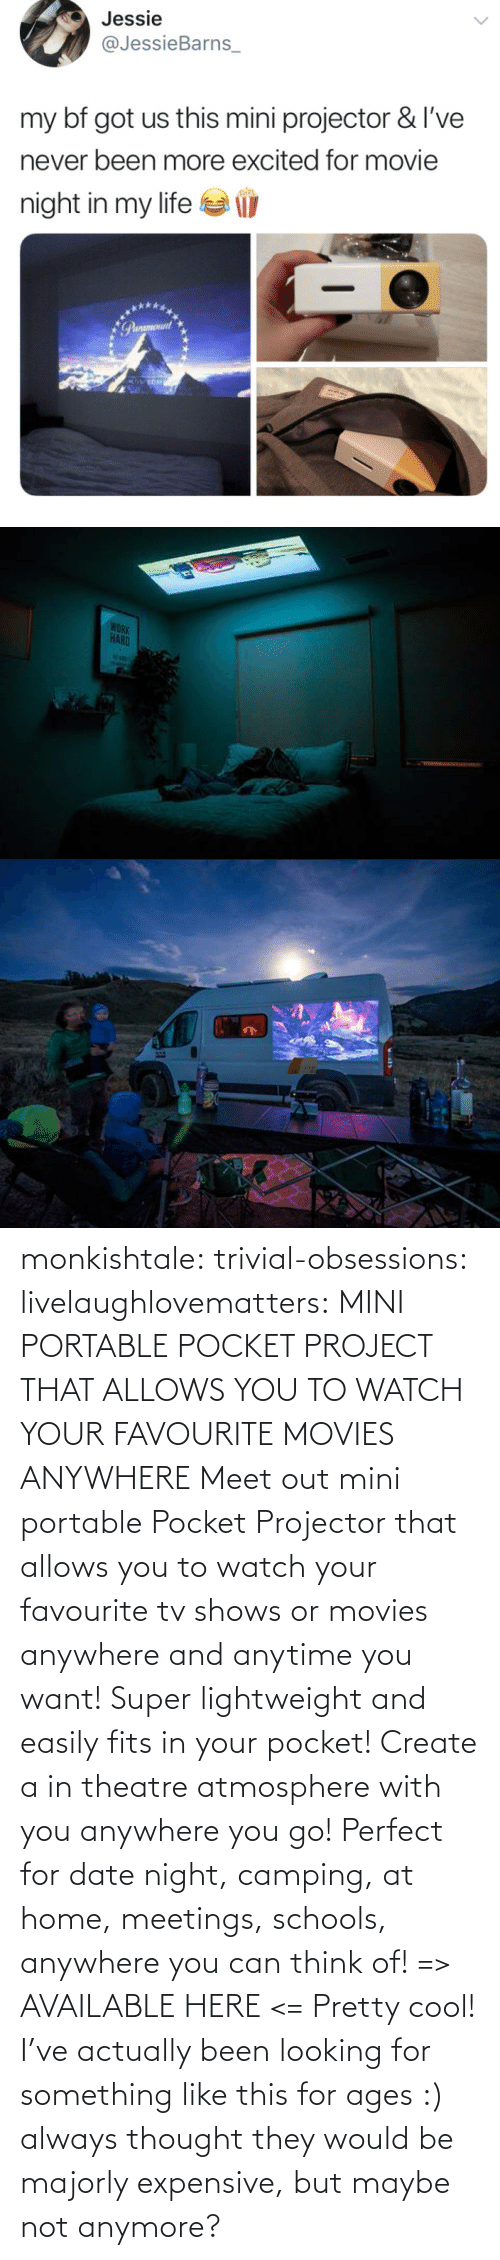 Meet: monkishtale: trivial-obsessions:   livelaughlovematters:   MINI PORTABLE POCKET PROJECT THAT ALLOWS YOU TO WATCH YOUR FAVOURITE MOVIES ANYWHERE Meet out mini portable Pocket Projector that allows you to watch your favourite tv shows or movies anywhere and anytime you want! Super lightweight and easily fits in your pocket! Create a in theatre atmosphere with you anywhere you go! Perfect for date night, camping, at home, meetings, schools, anywhere you can think of! => AVAILABLE HERE <=    Pretty cool!    I've actually been looking for something like this for ages :) always thought they would be majorly expensive, but maybe not anymore?